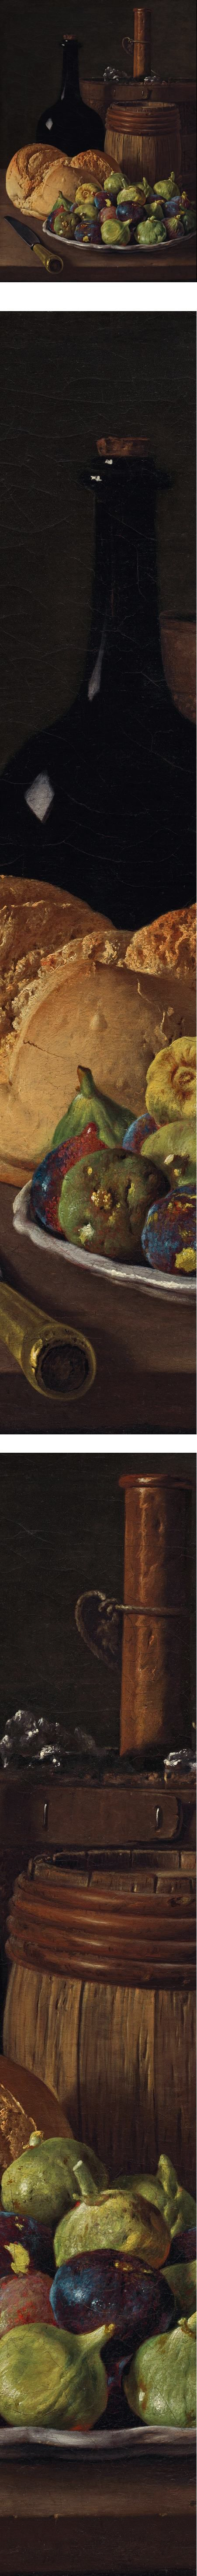 Eye Candy for Today: Luis Meléndez Still Life with Figs and Bread